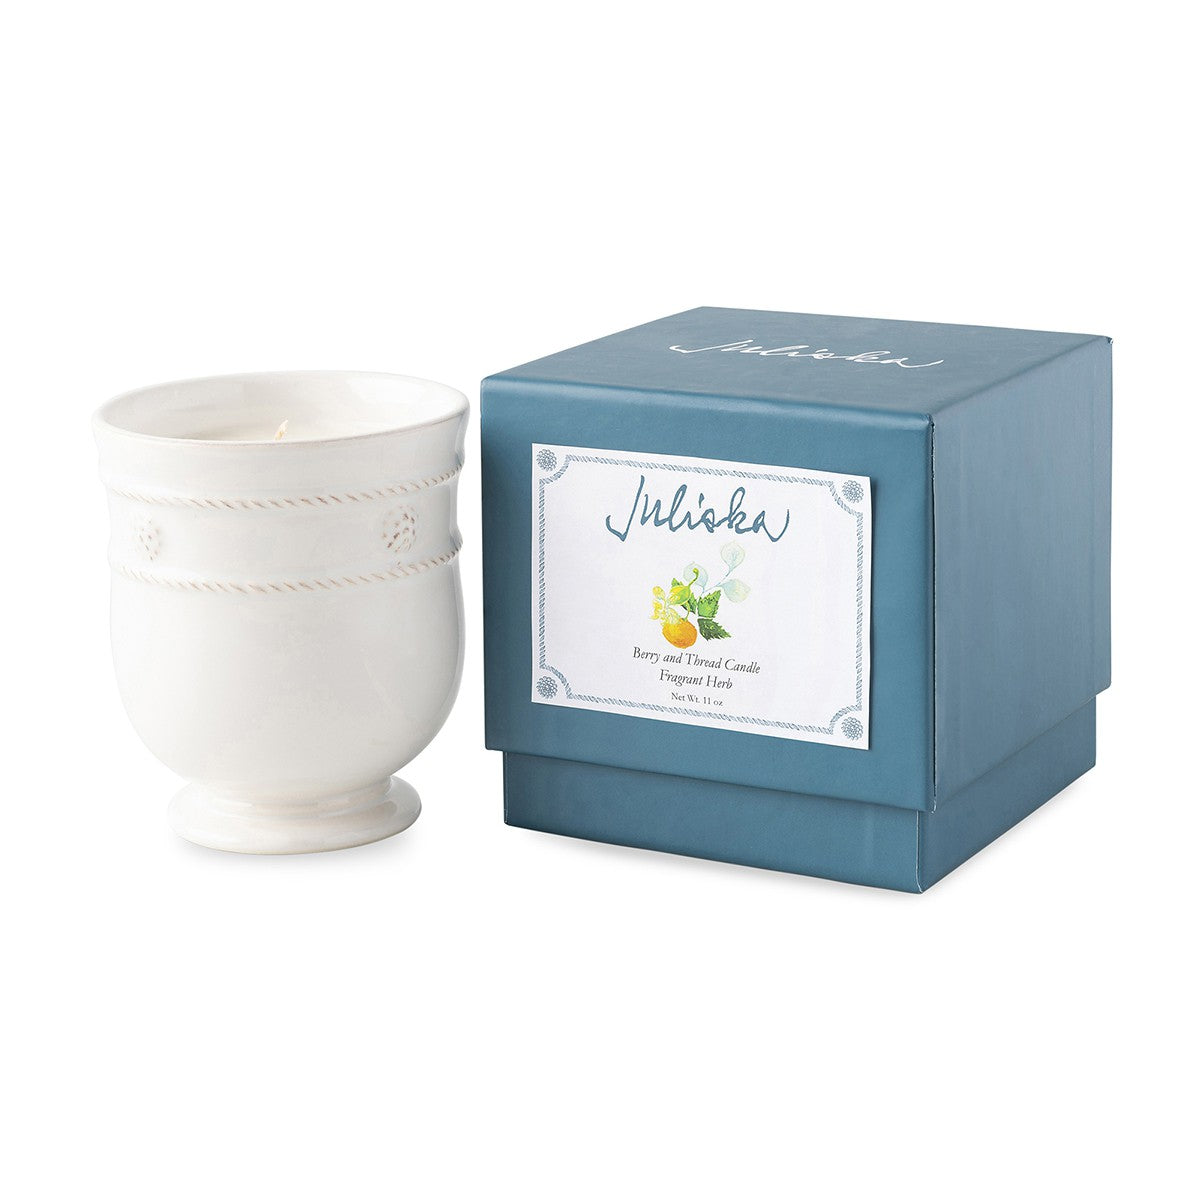 B&T Whitewash Fragrant Herb Candle